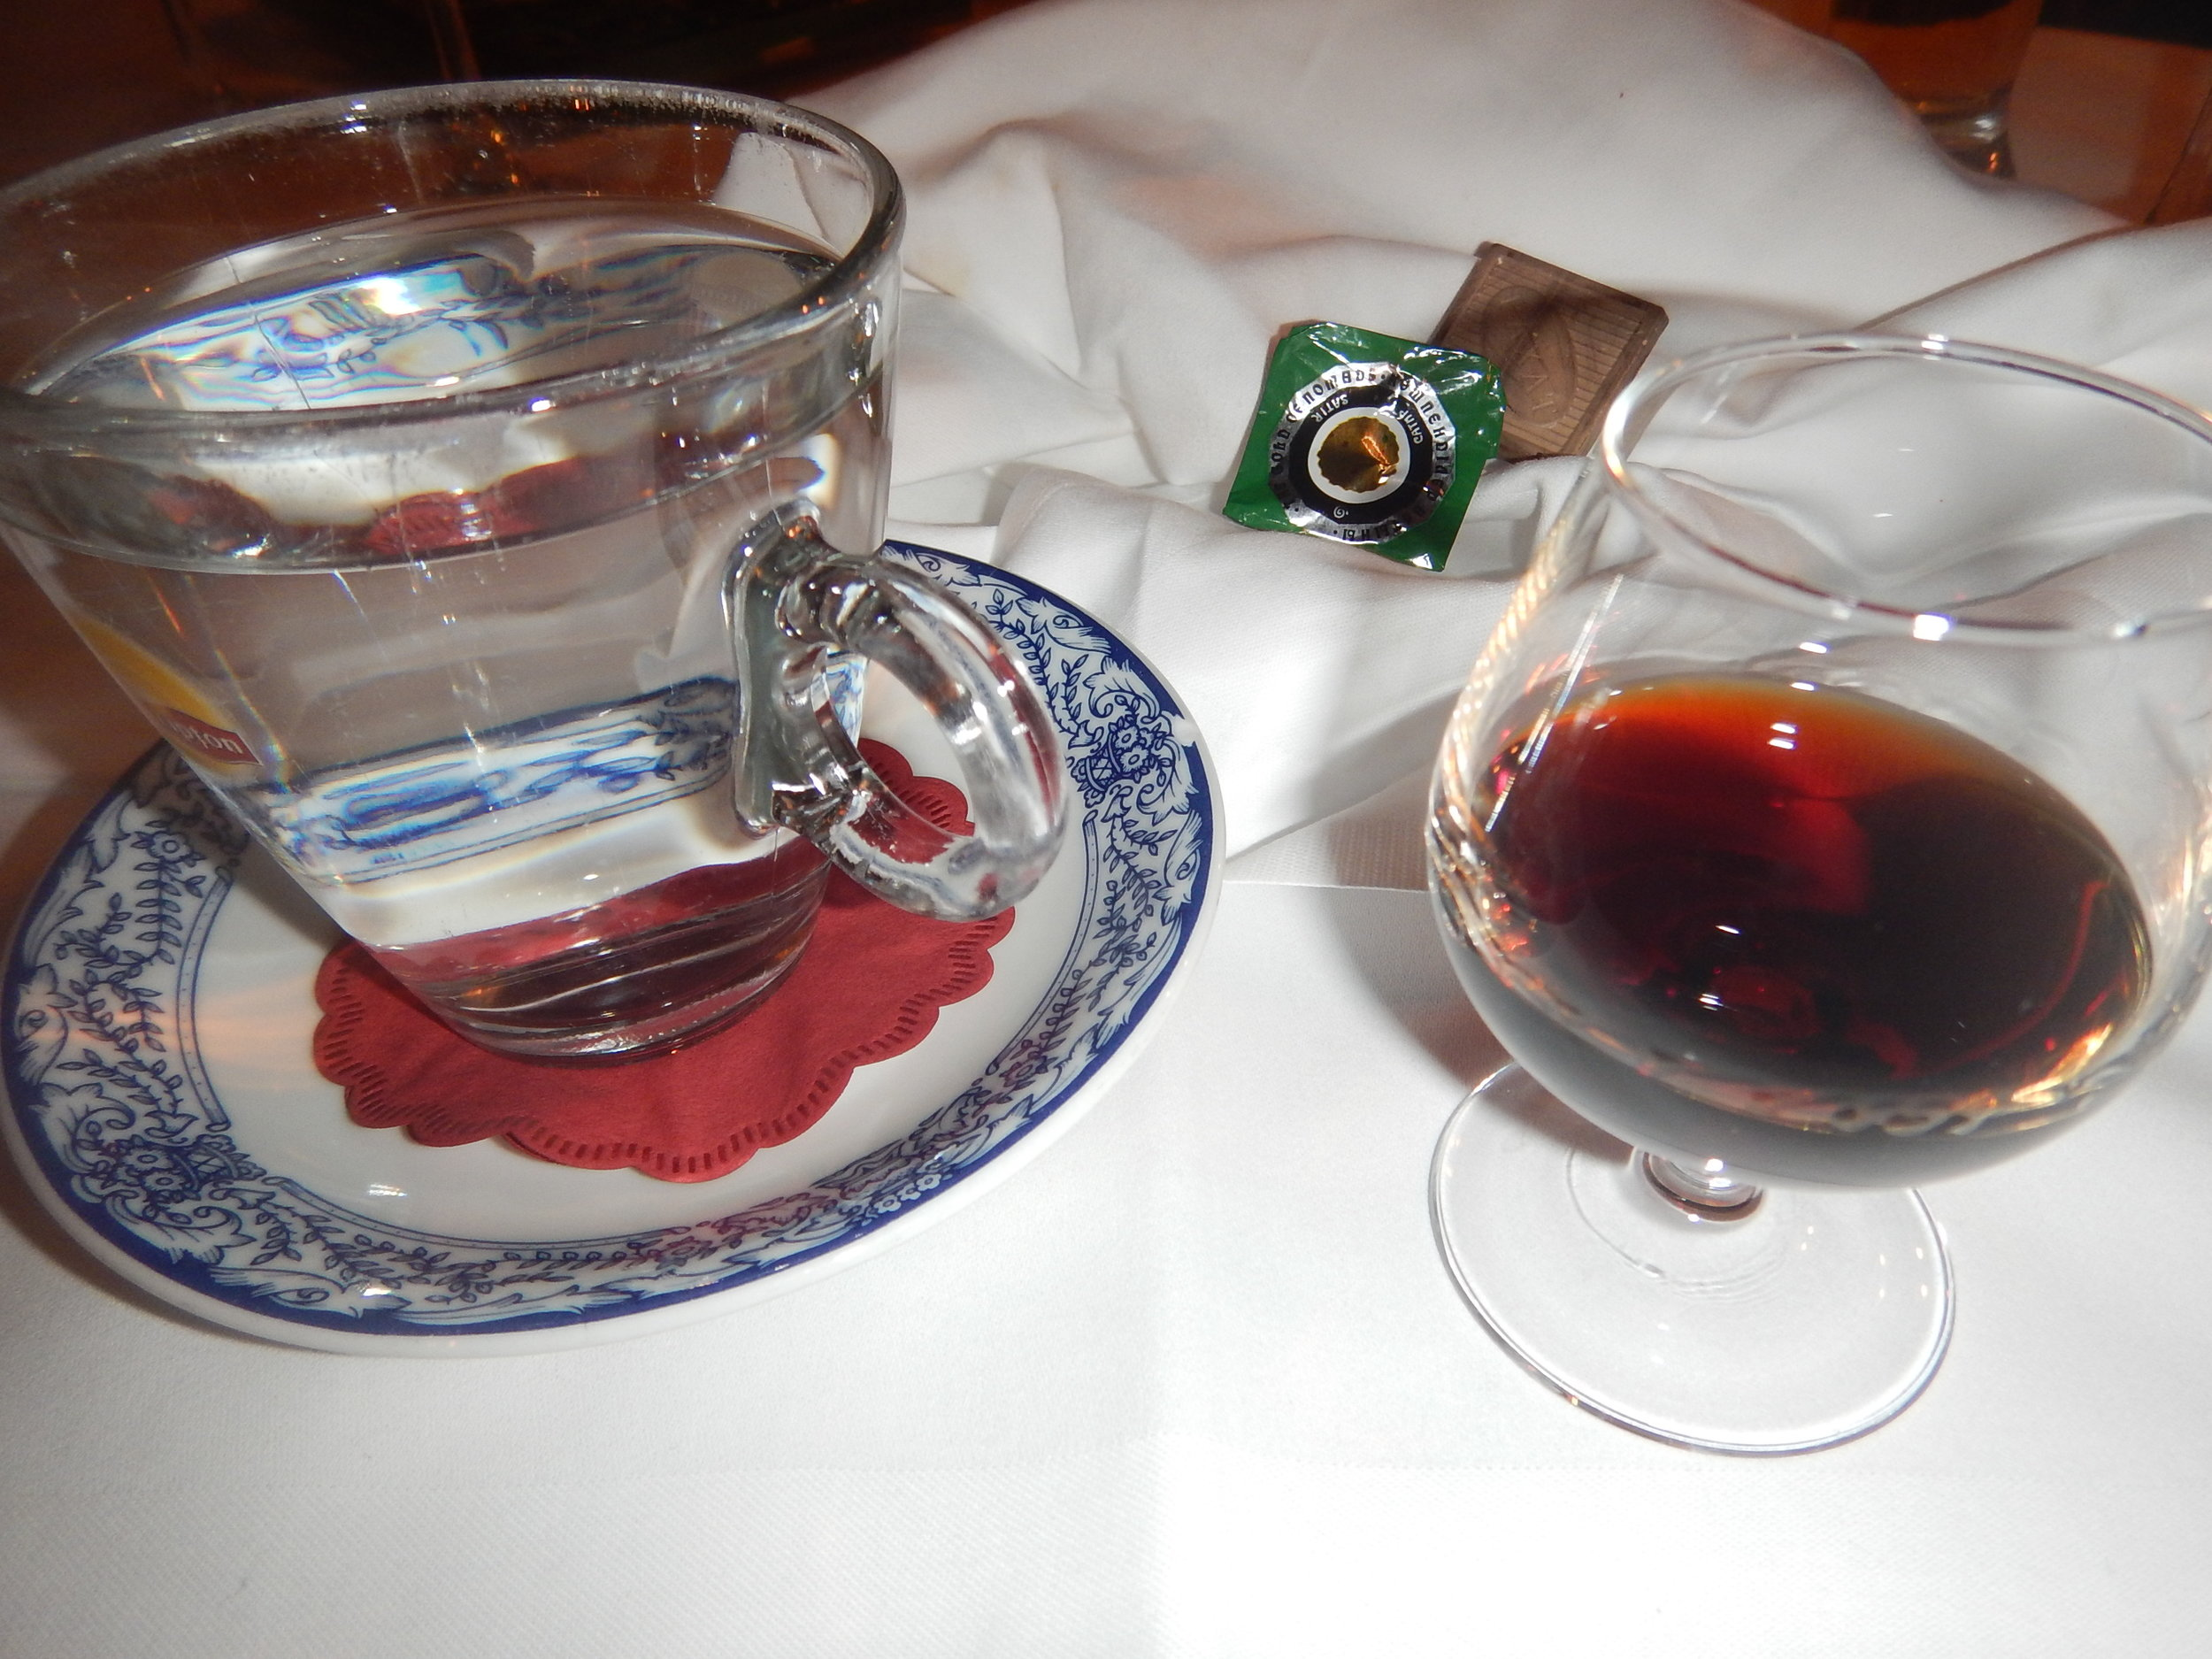 Sipping cherry SchnappS at Schatzalp reStaurant. I can't believe there is no S in chocolate!!